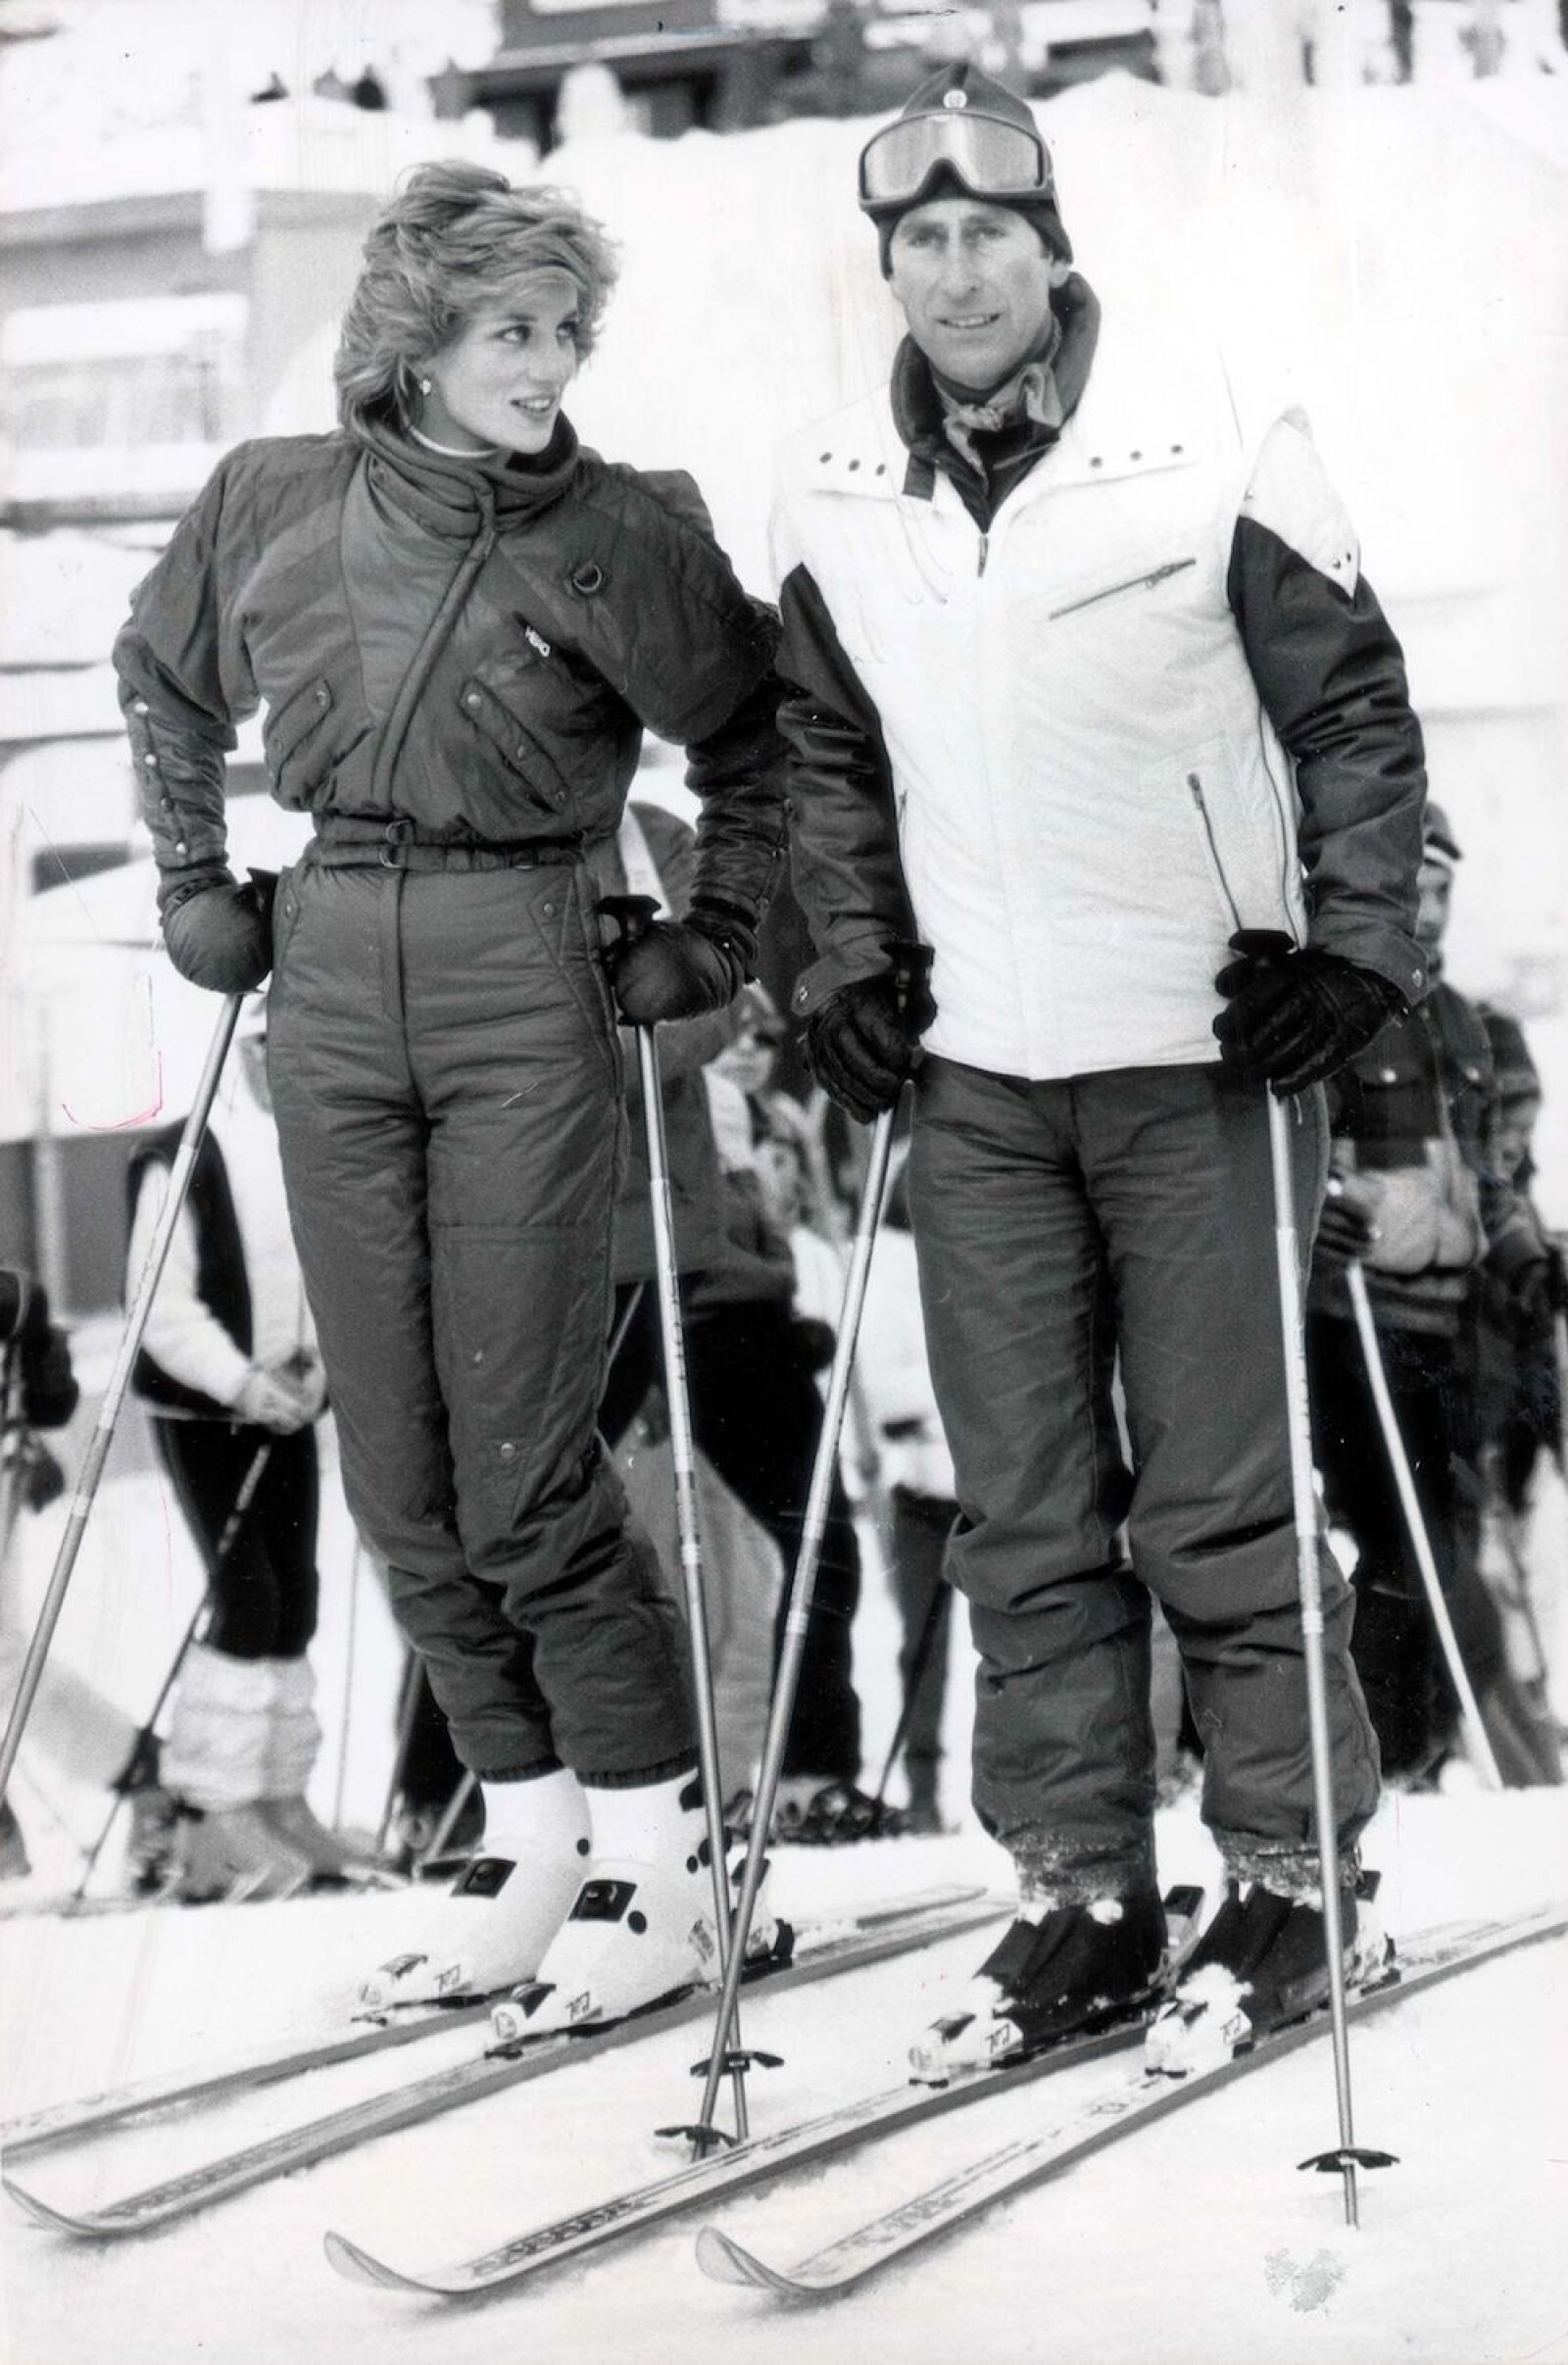 Prince Of Wales & Diana - Winter Sports 1980-89 Charles And Diana Yesterday In Liechtenstein Princess Diana Walked Off The Ski-slopes Yesterday Leaving Prince Charles To Ski Alone And Mumuring: 'i'll Probably Get It In The Neck For This.' As The P